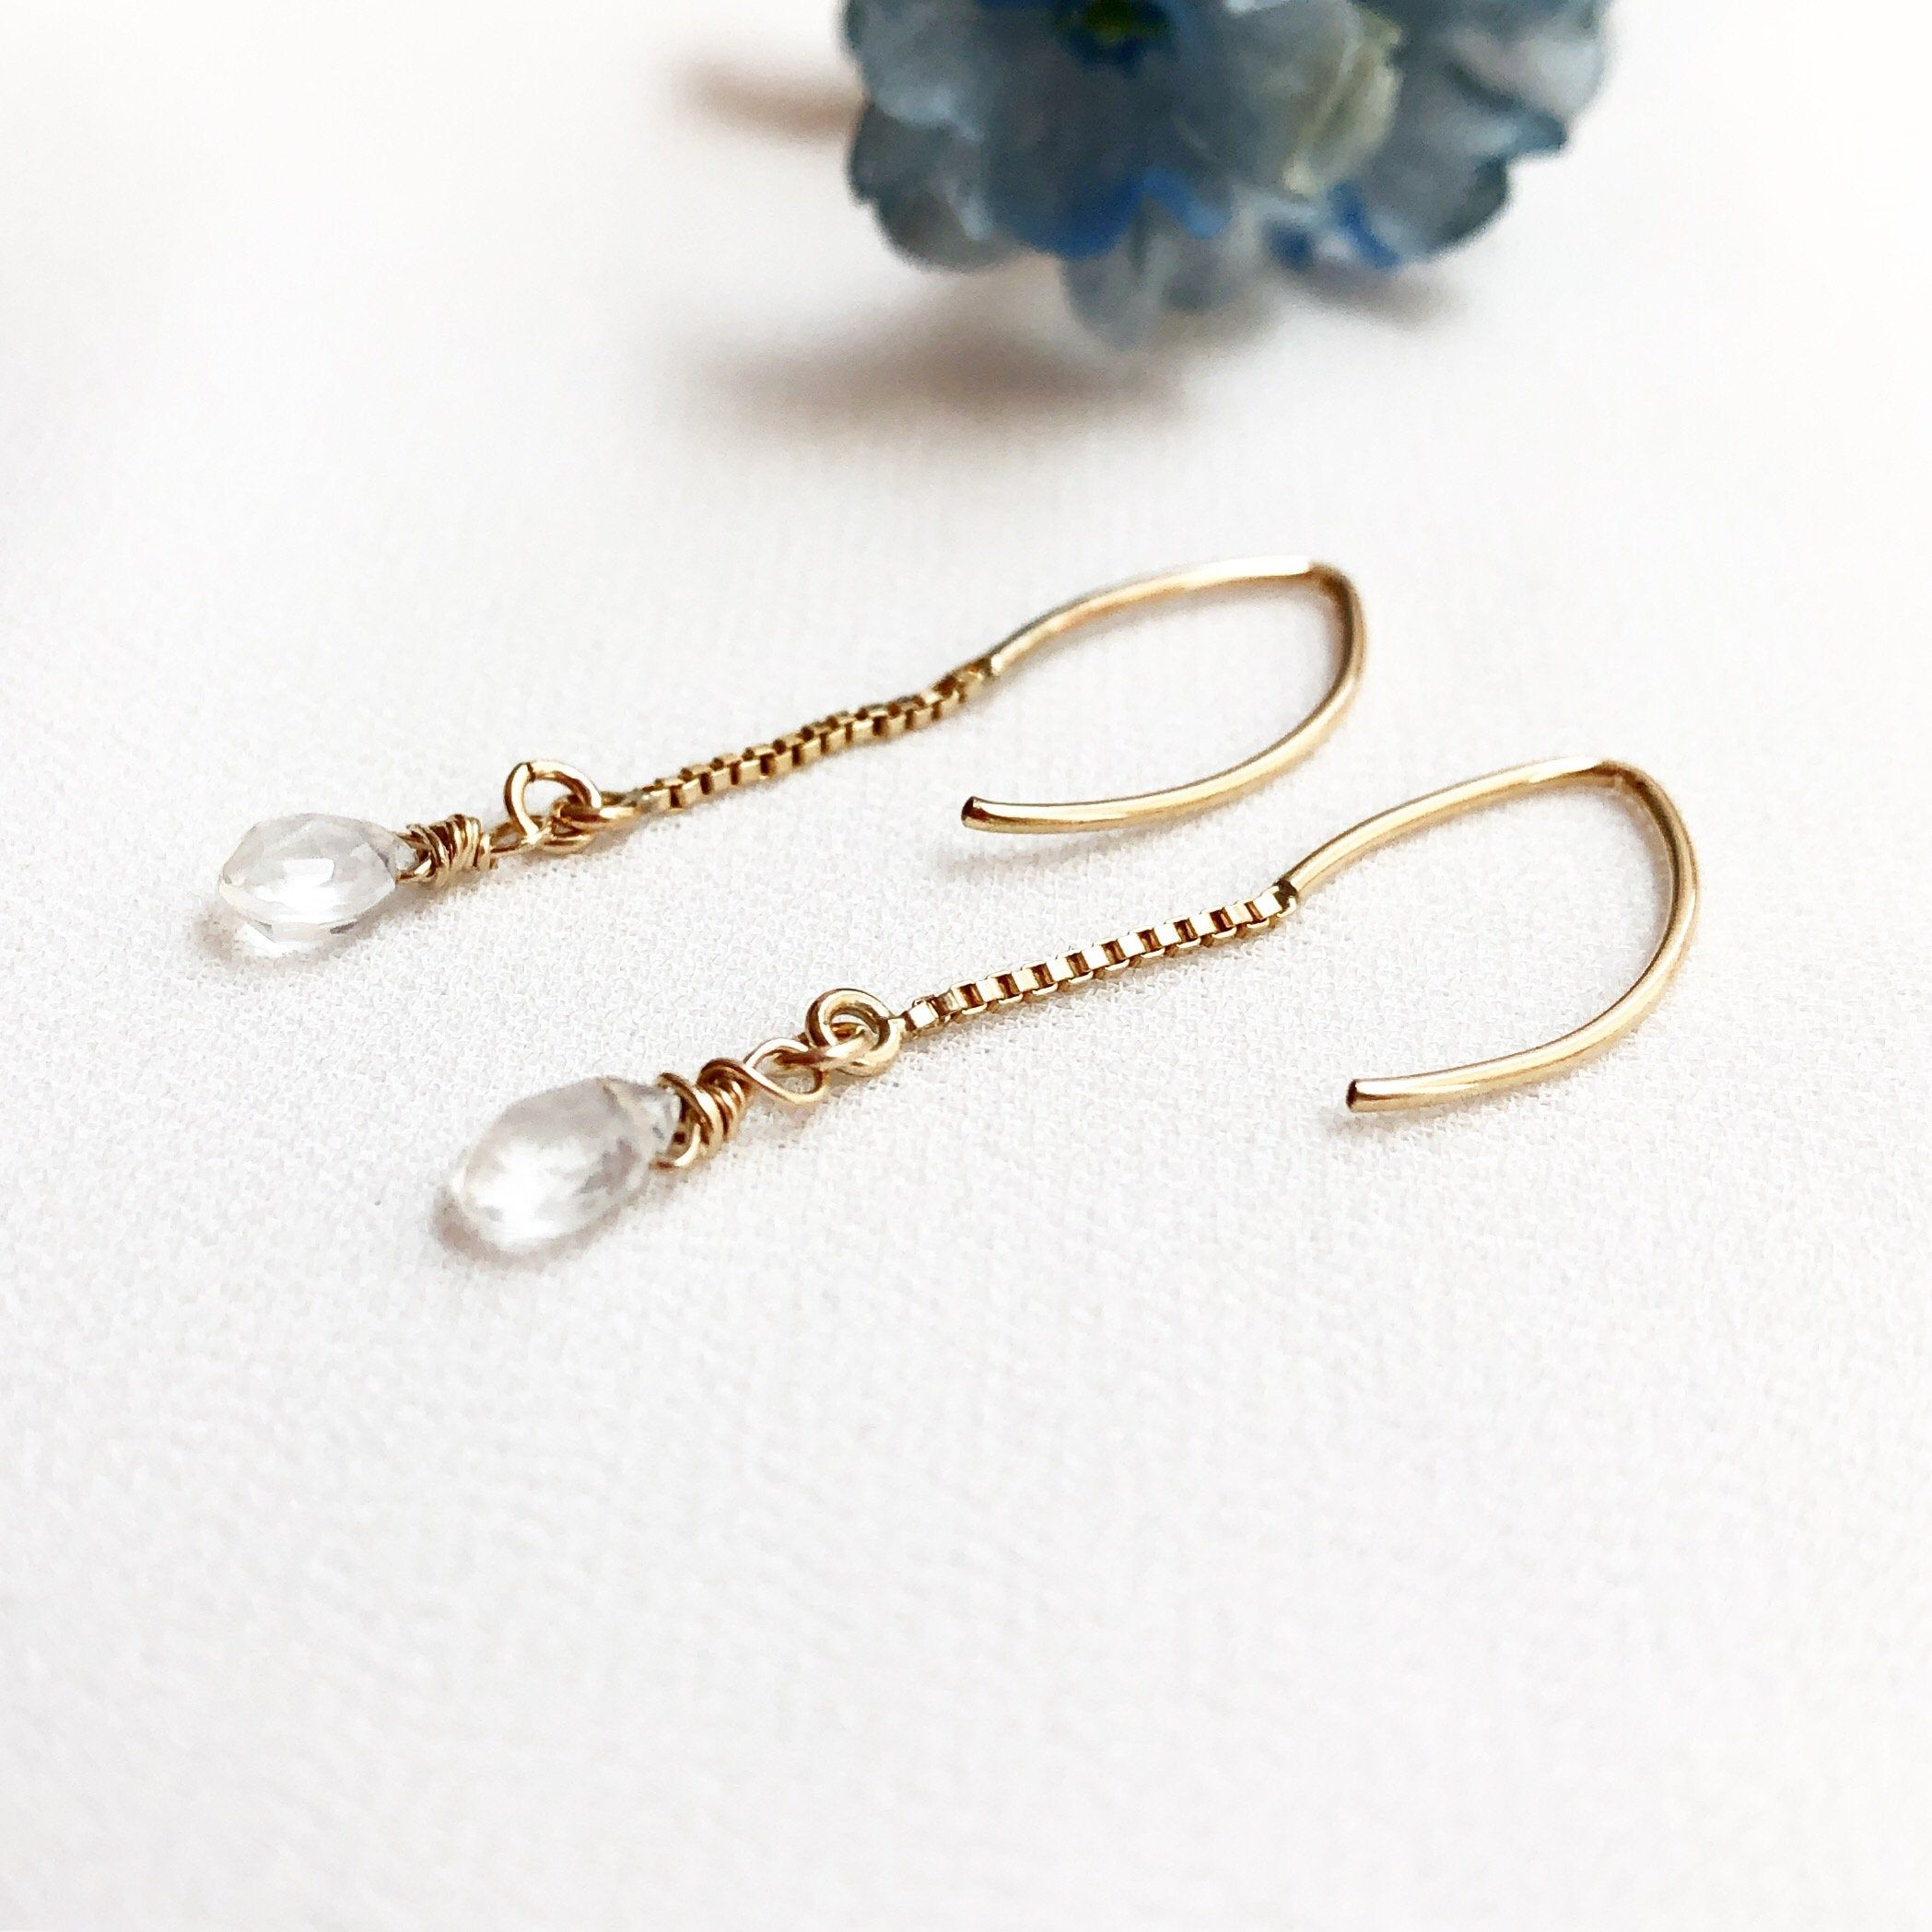 Photo of Gemstone earrings, moonstone earrings, April birthstone earrings, wedding party gifts, bridesmaid jewelry, office equipment, delicate jewelry